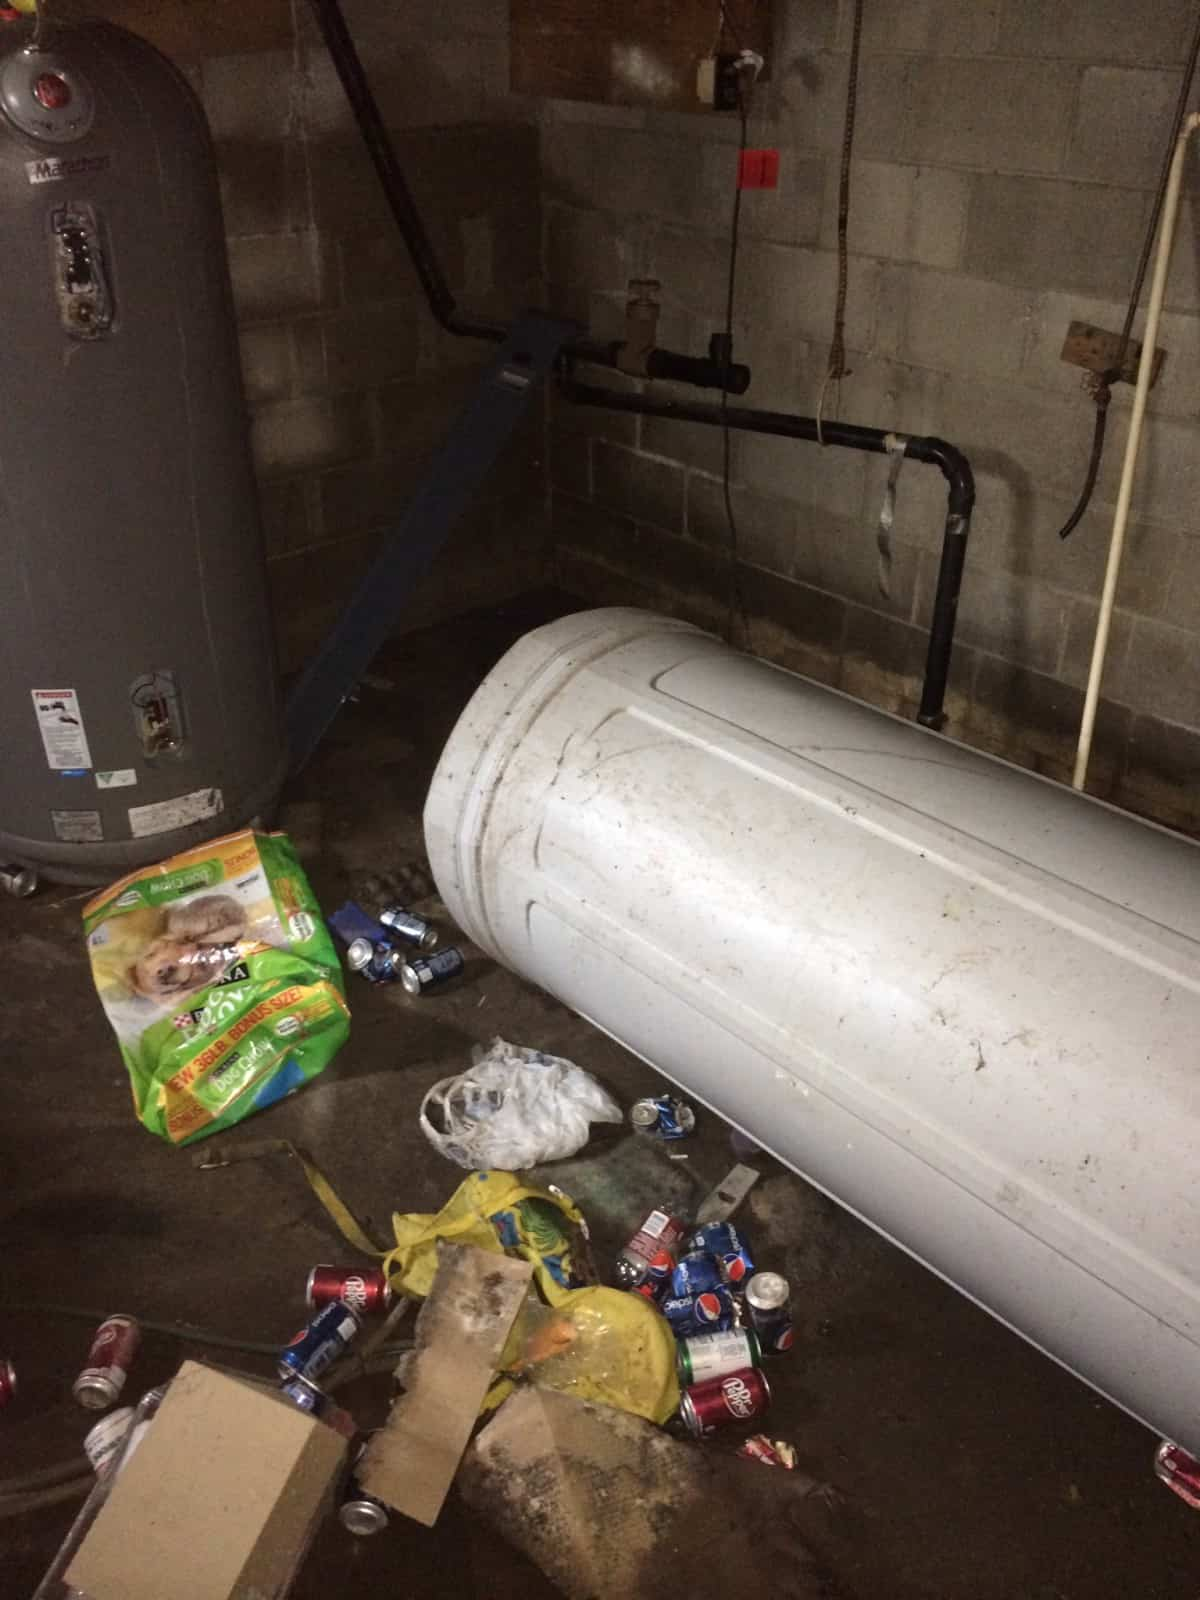 Sewer backup cleanup and restoration minnesota for Sewer backup smell in house